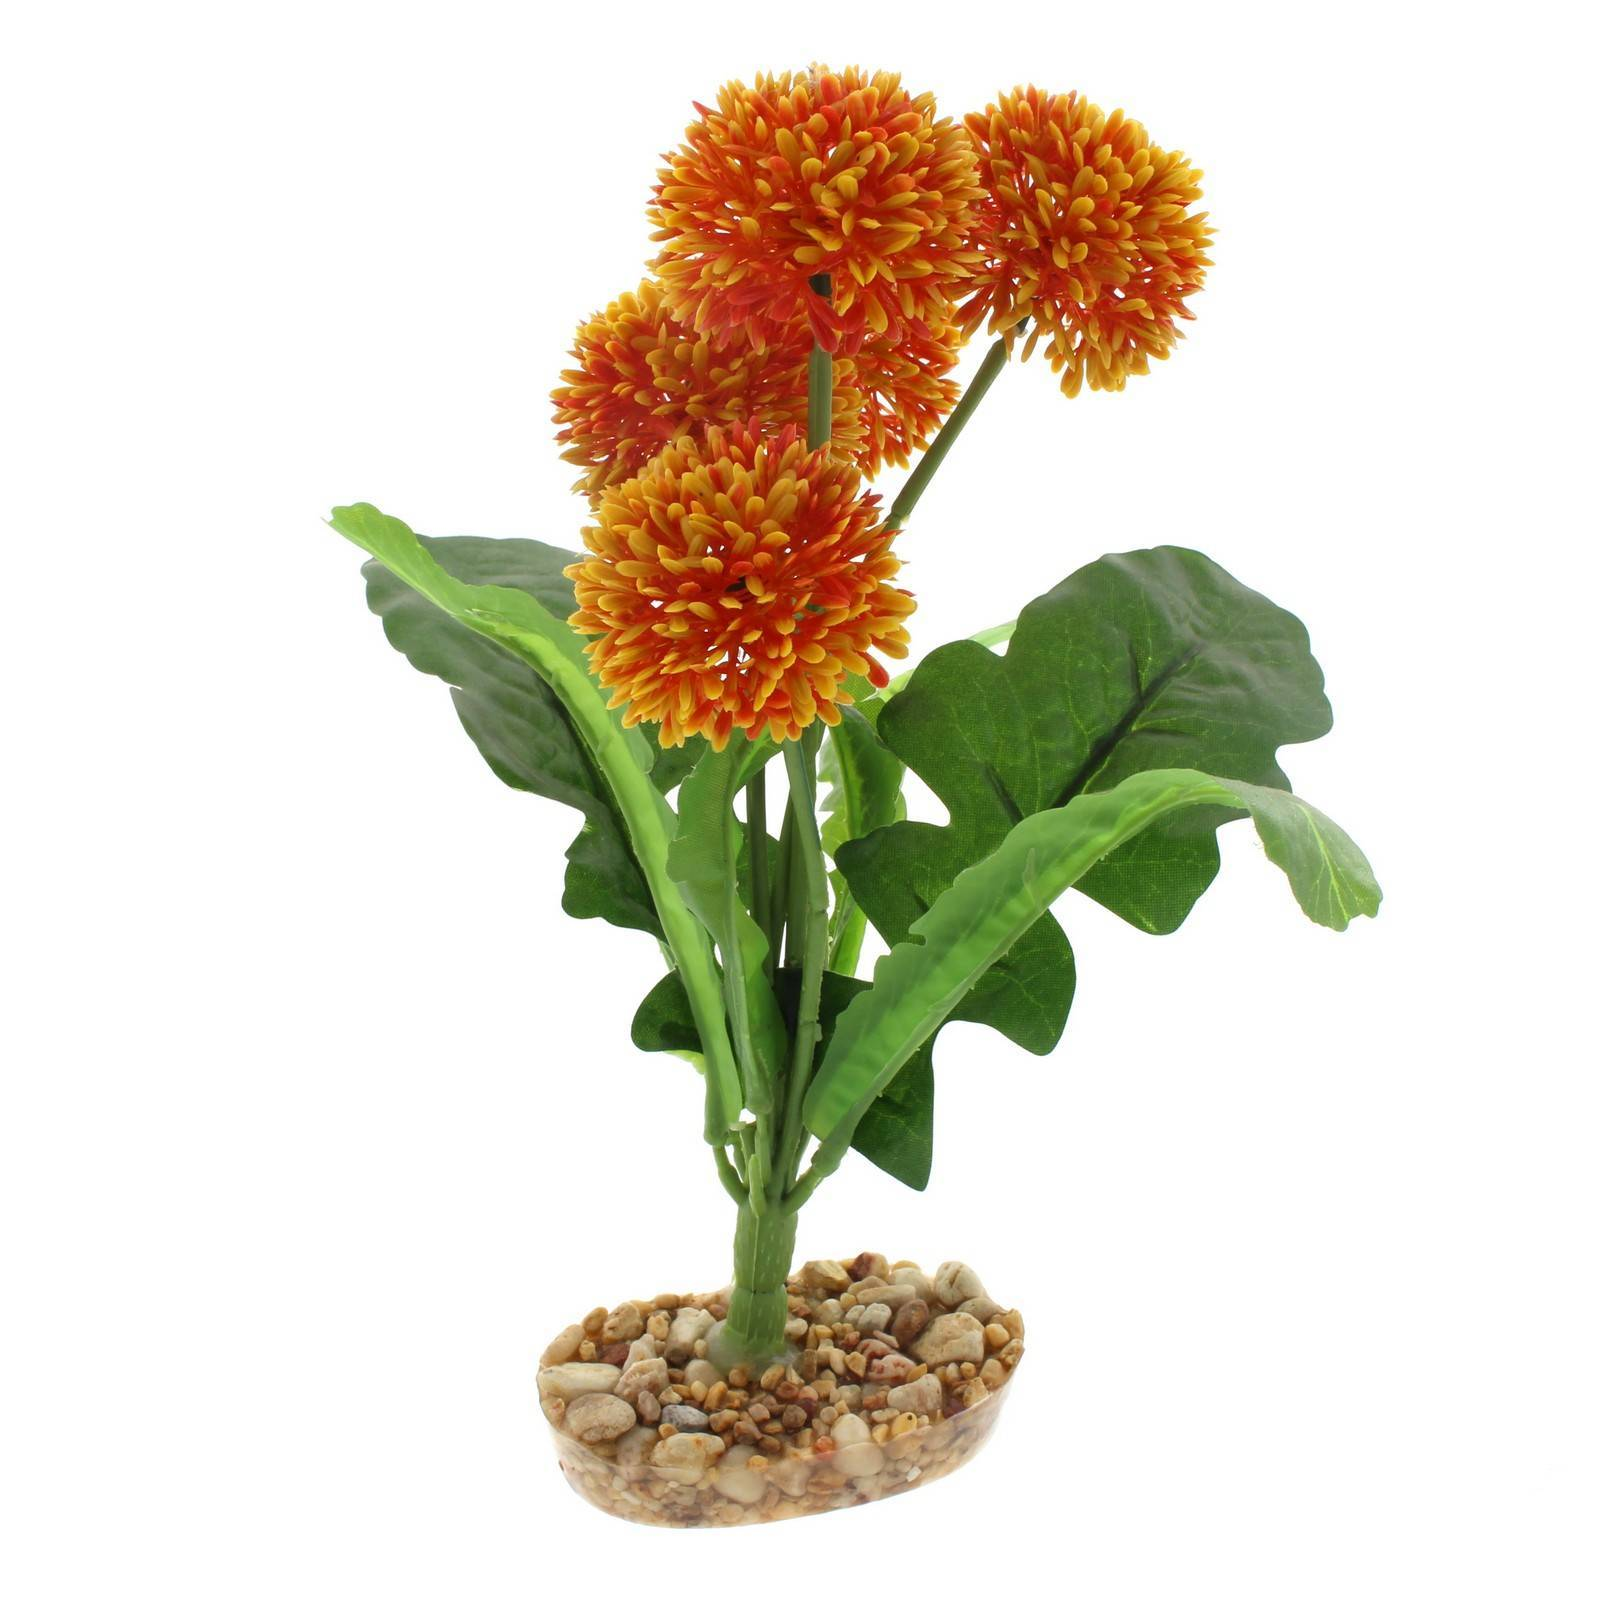 Reptile Plant Yellow Pom Pom With Gravel Base Realistic Silk